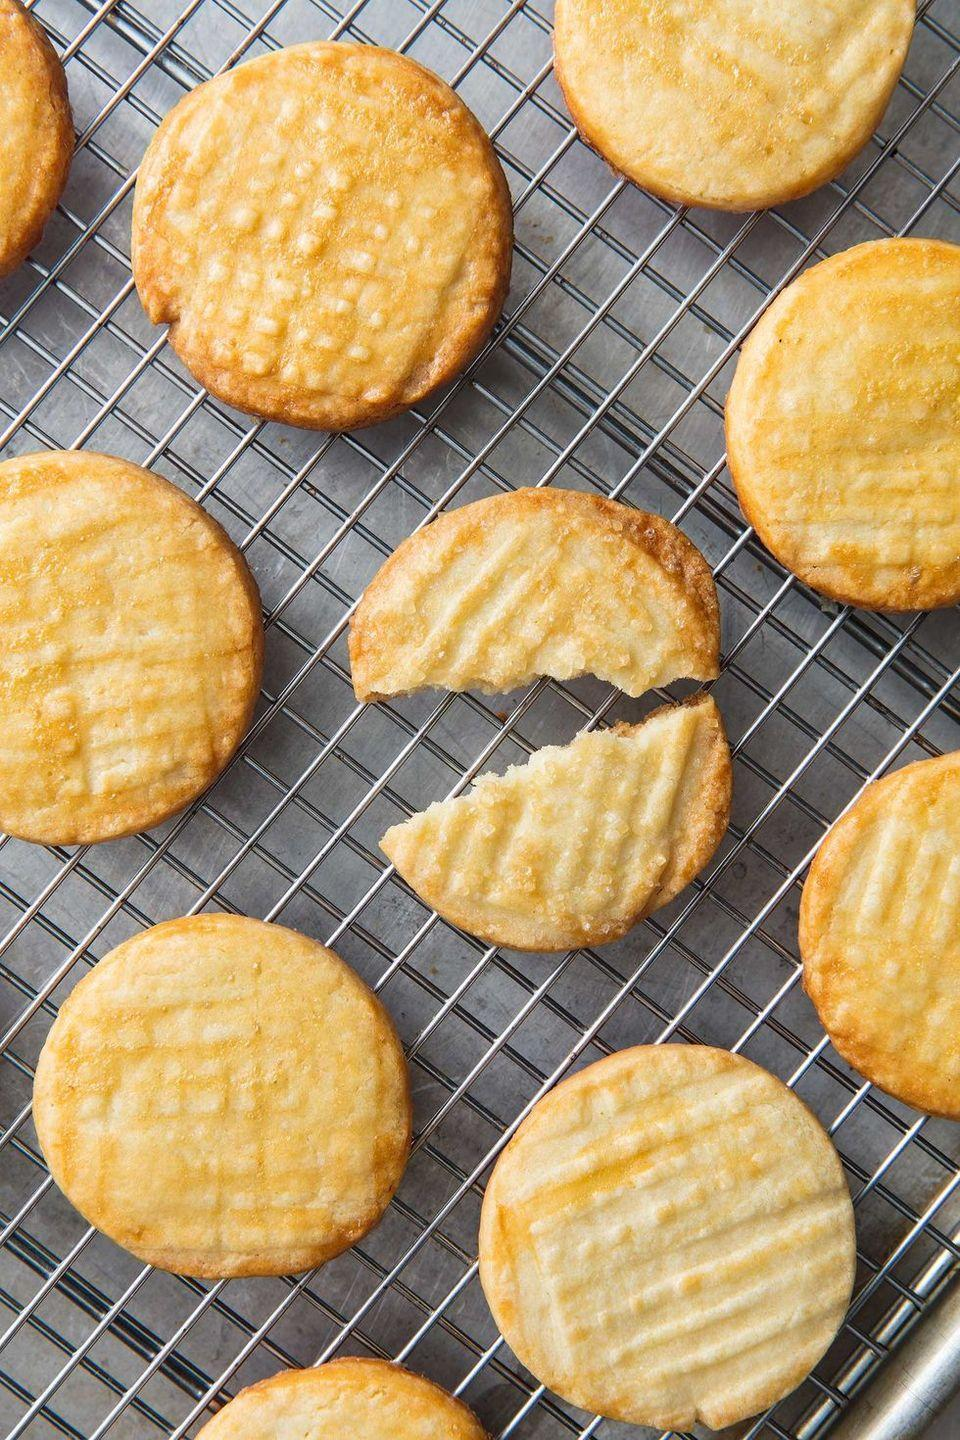 "<p>Butter cookies are a classic, and this recipe only takes five minutes to prep, so it's the perfect recipe to choose if you're short on time. </p><p><strong><em>Get the recipe at <a href=""https://www.delish.com/cooking/recipe-ideas/a20138735/butter-cookies-recipe/"" rel=""nofollow noopener"" target=""_blank"" data-ylk=""slk:Delish"" class=""link rapid-noclick-resp"">Delish</a>.</em></strong></p>"